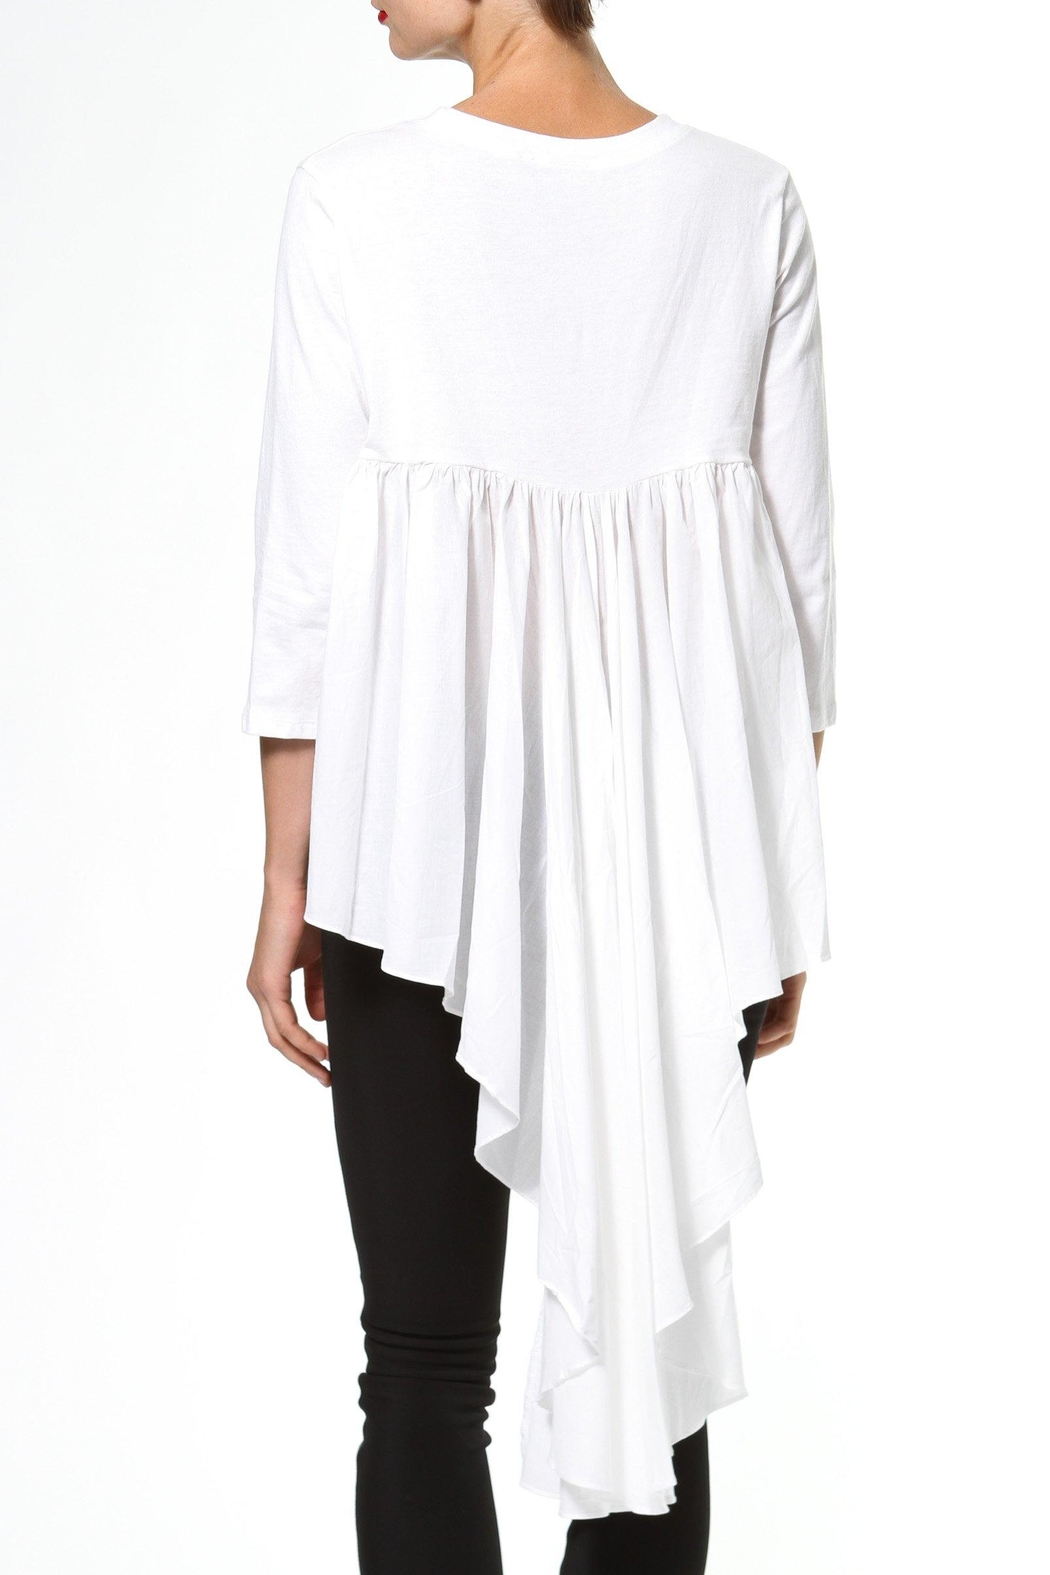 Madonna & Co Hi-Lo Woven/knit Tee - Side Cropped Image